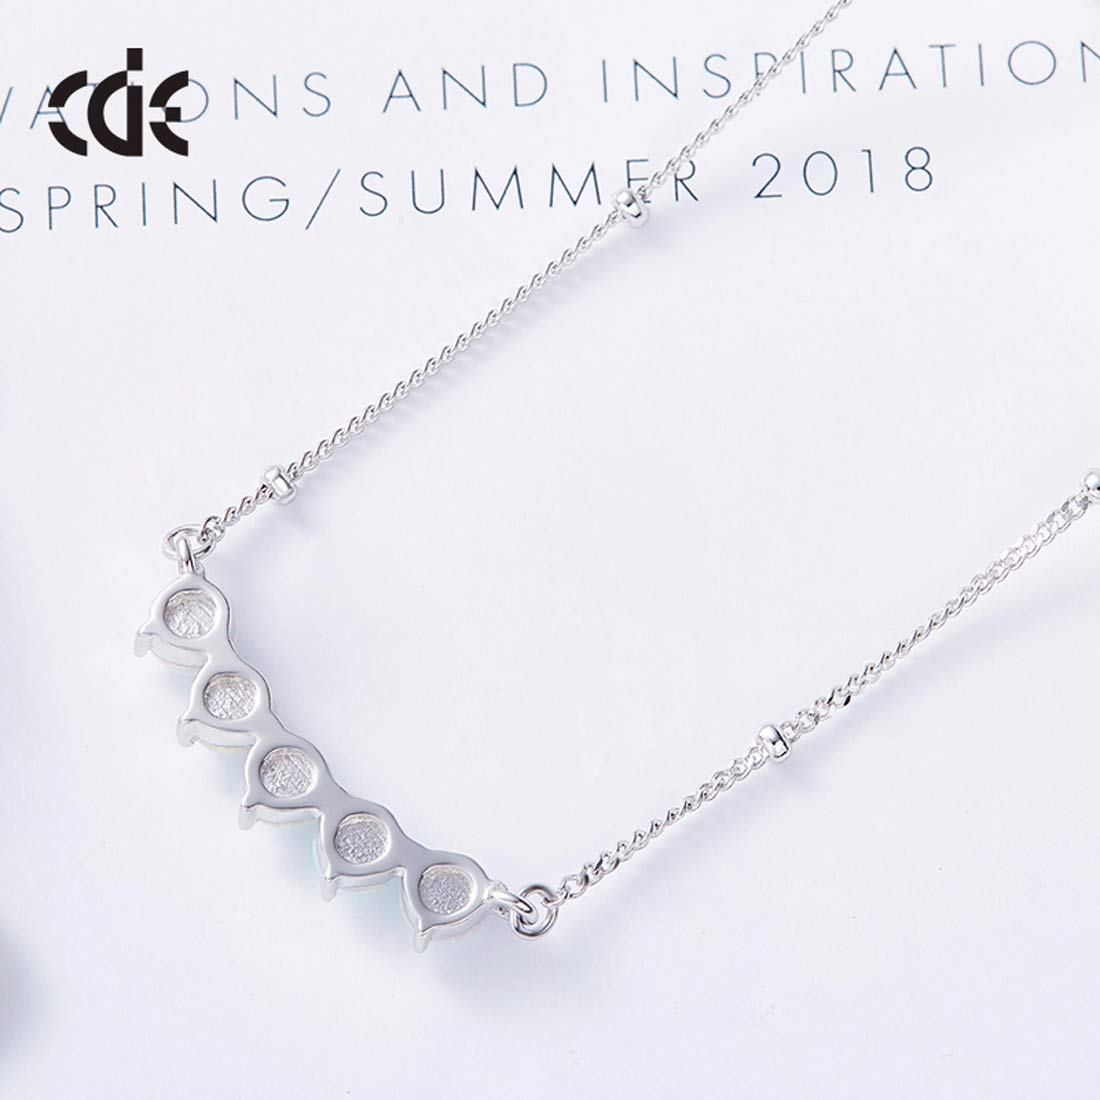 CQFONG 925 Sterling Silver Pendant Necklace with Opal Stones for Women Girl Twinkling-Collection